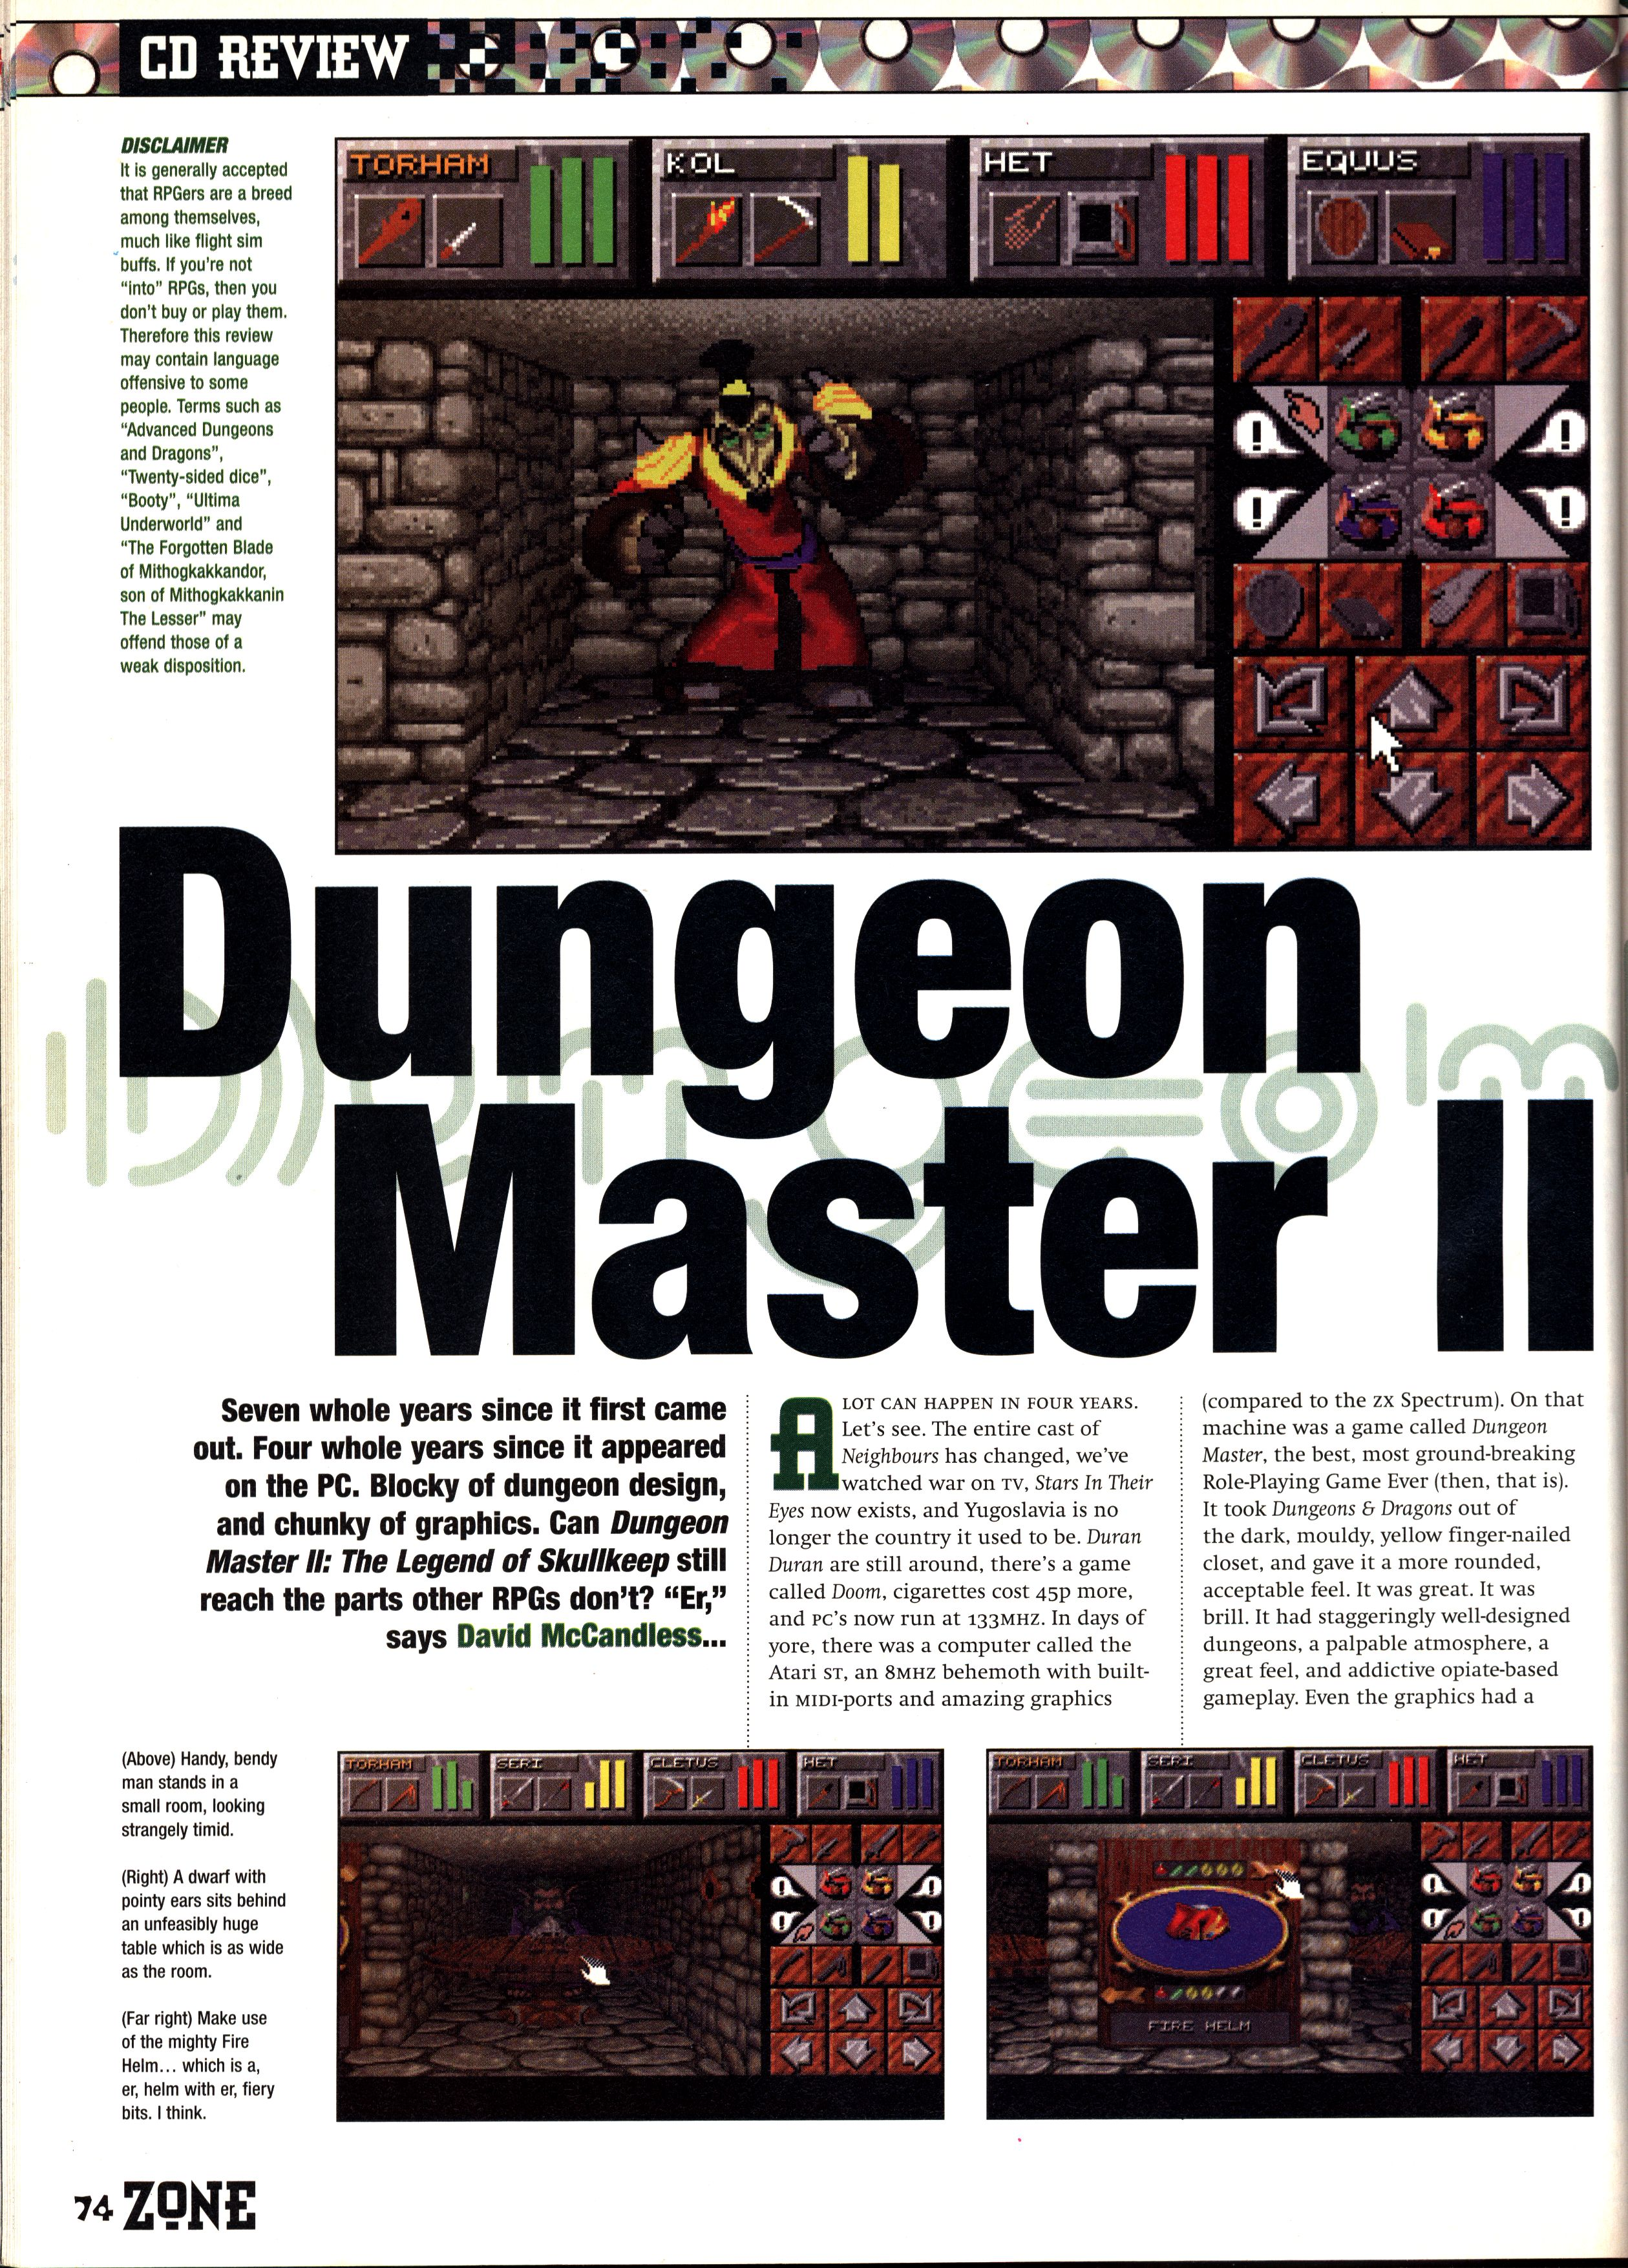 Dungeon Master II for PC Review published in British magazine 'PC Zone', Issue #30 September 1995, Page 74